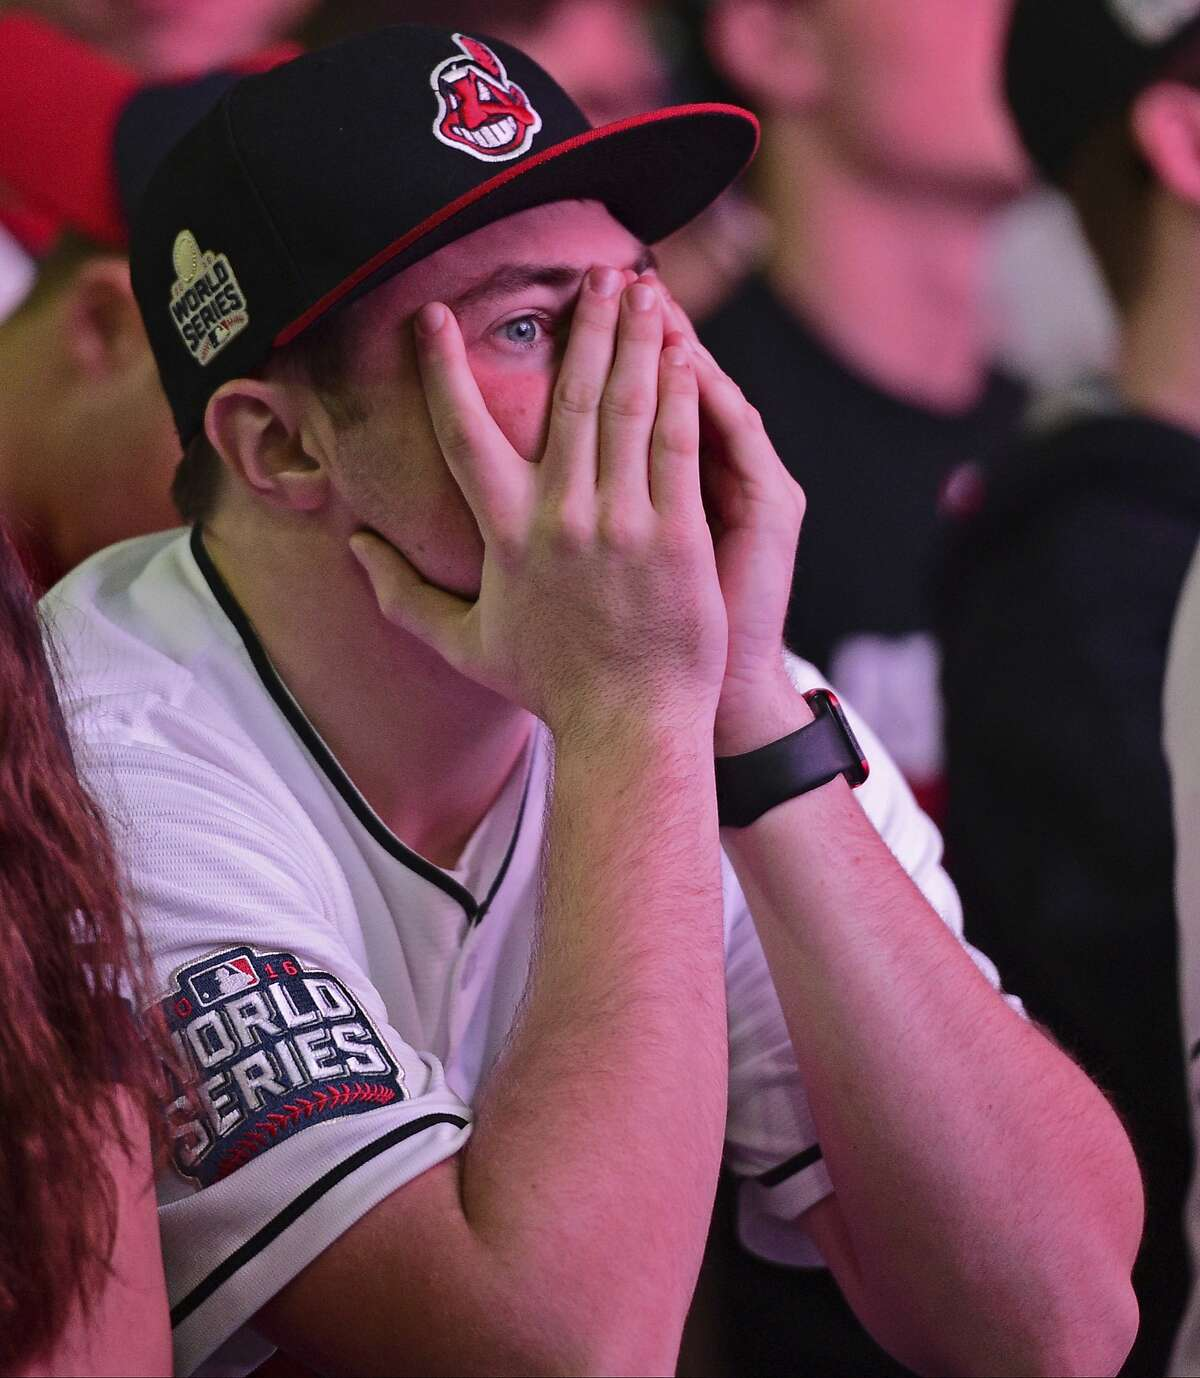 Cleveland Indians fan Ty Bailey reacts during a watch party for Game 6 of the baseball World Series between the Indians and the Chicago Cubs, outside Progressive Field, Tuesday, Nov. 1, 2016, in Cleveland. The Cubs won 9-3 to send the series to Game 7, (AP Photo/David Dermer)